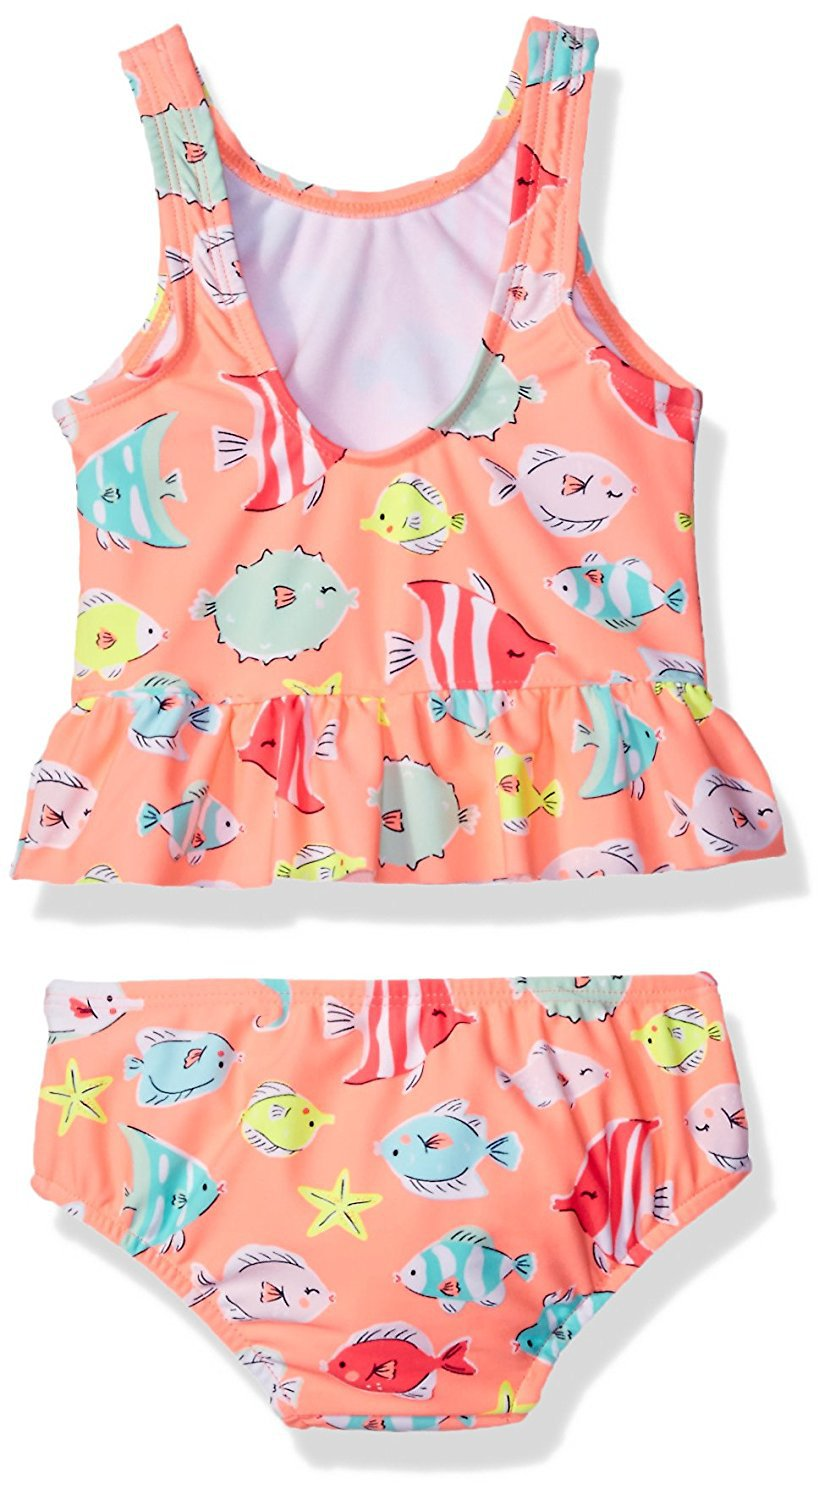 KY wholesale OEM Non-padded cups 2 pieces set flower print crew neck girl kids swimsuit